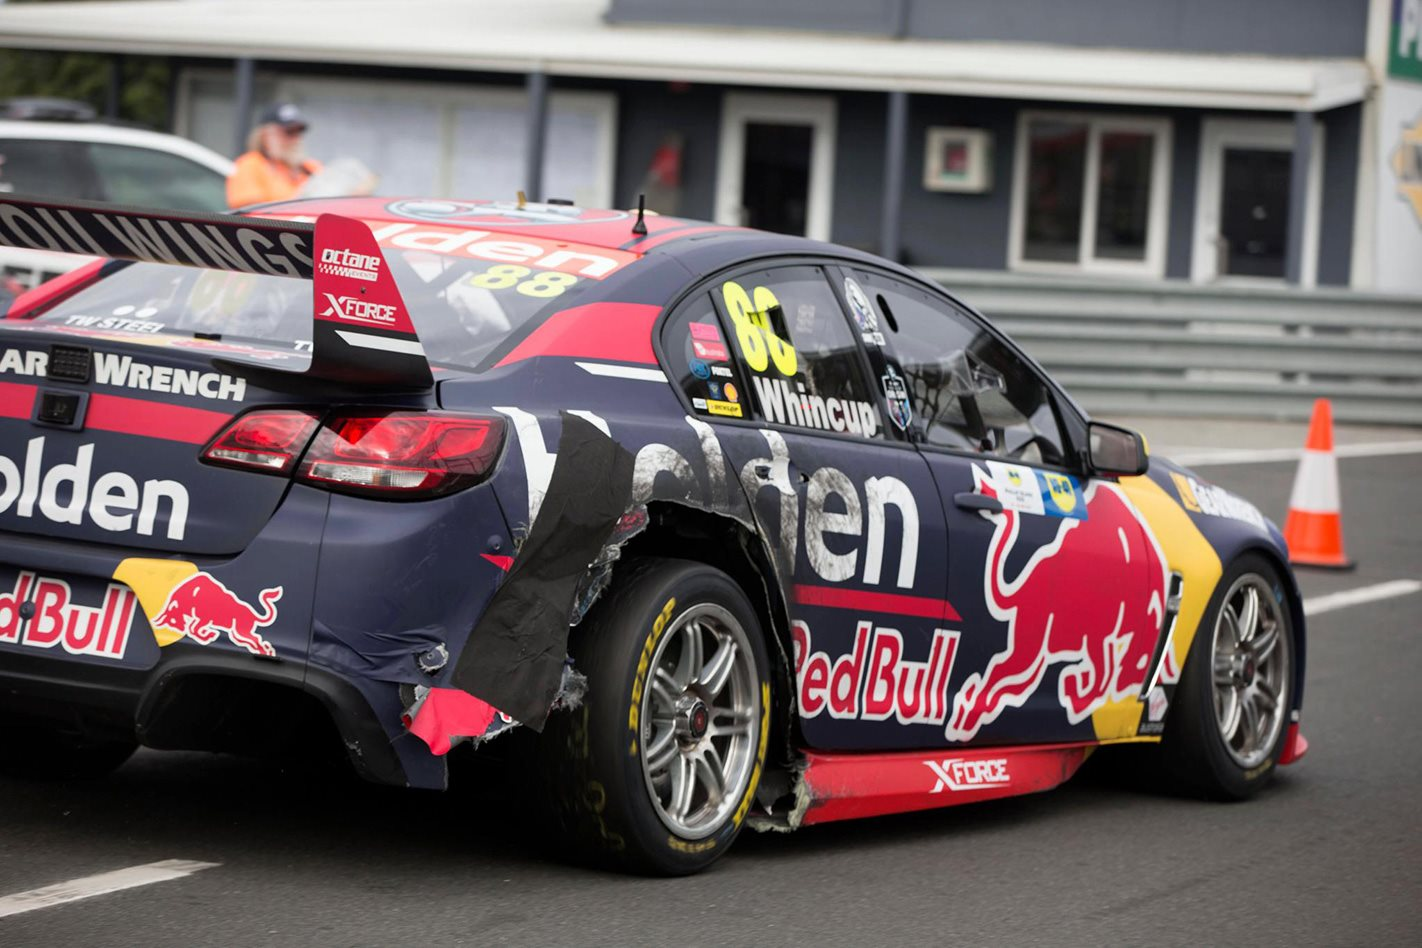 Tyre blowouts rule at Phillip Island Supercars round